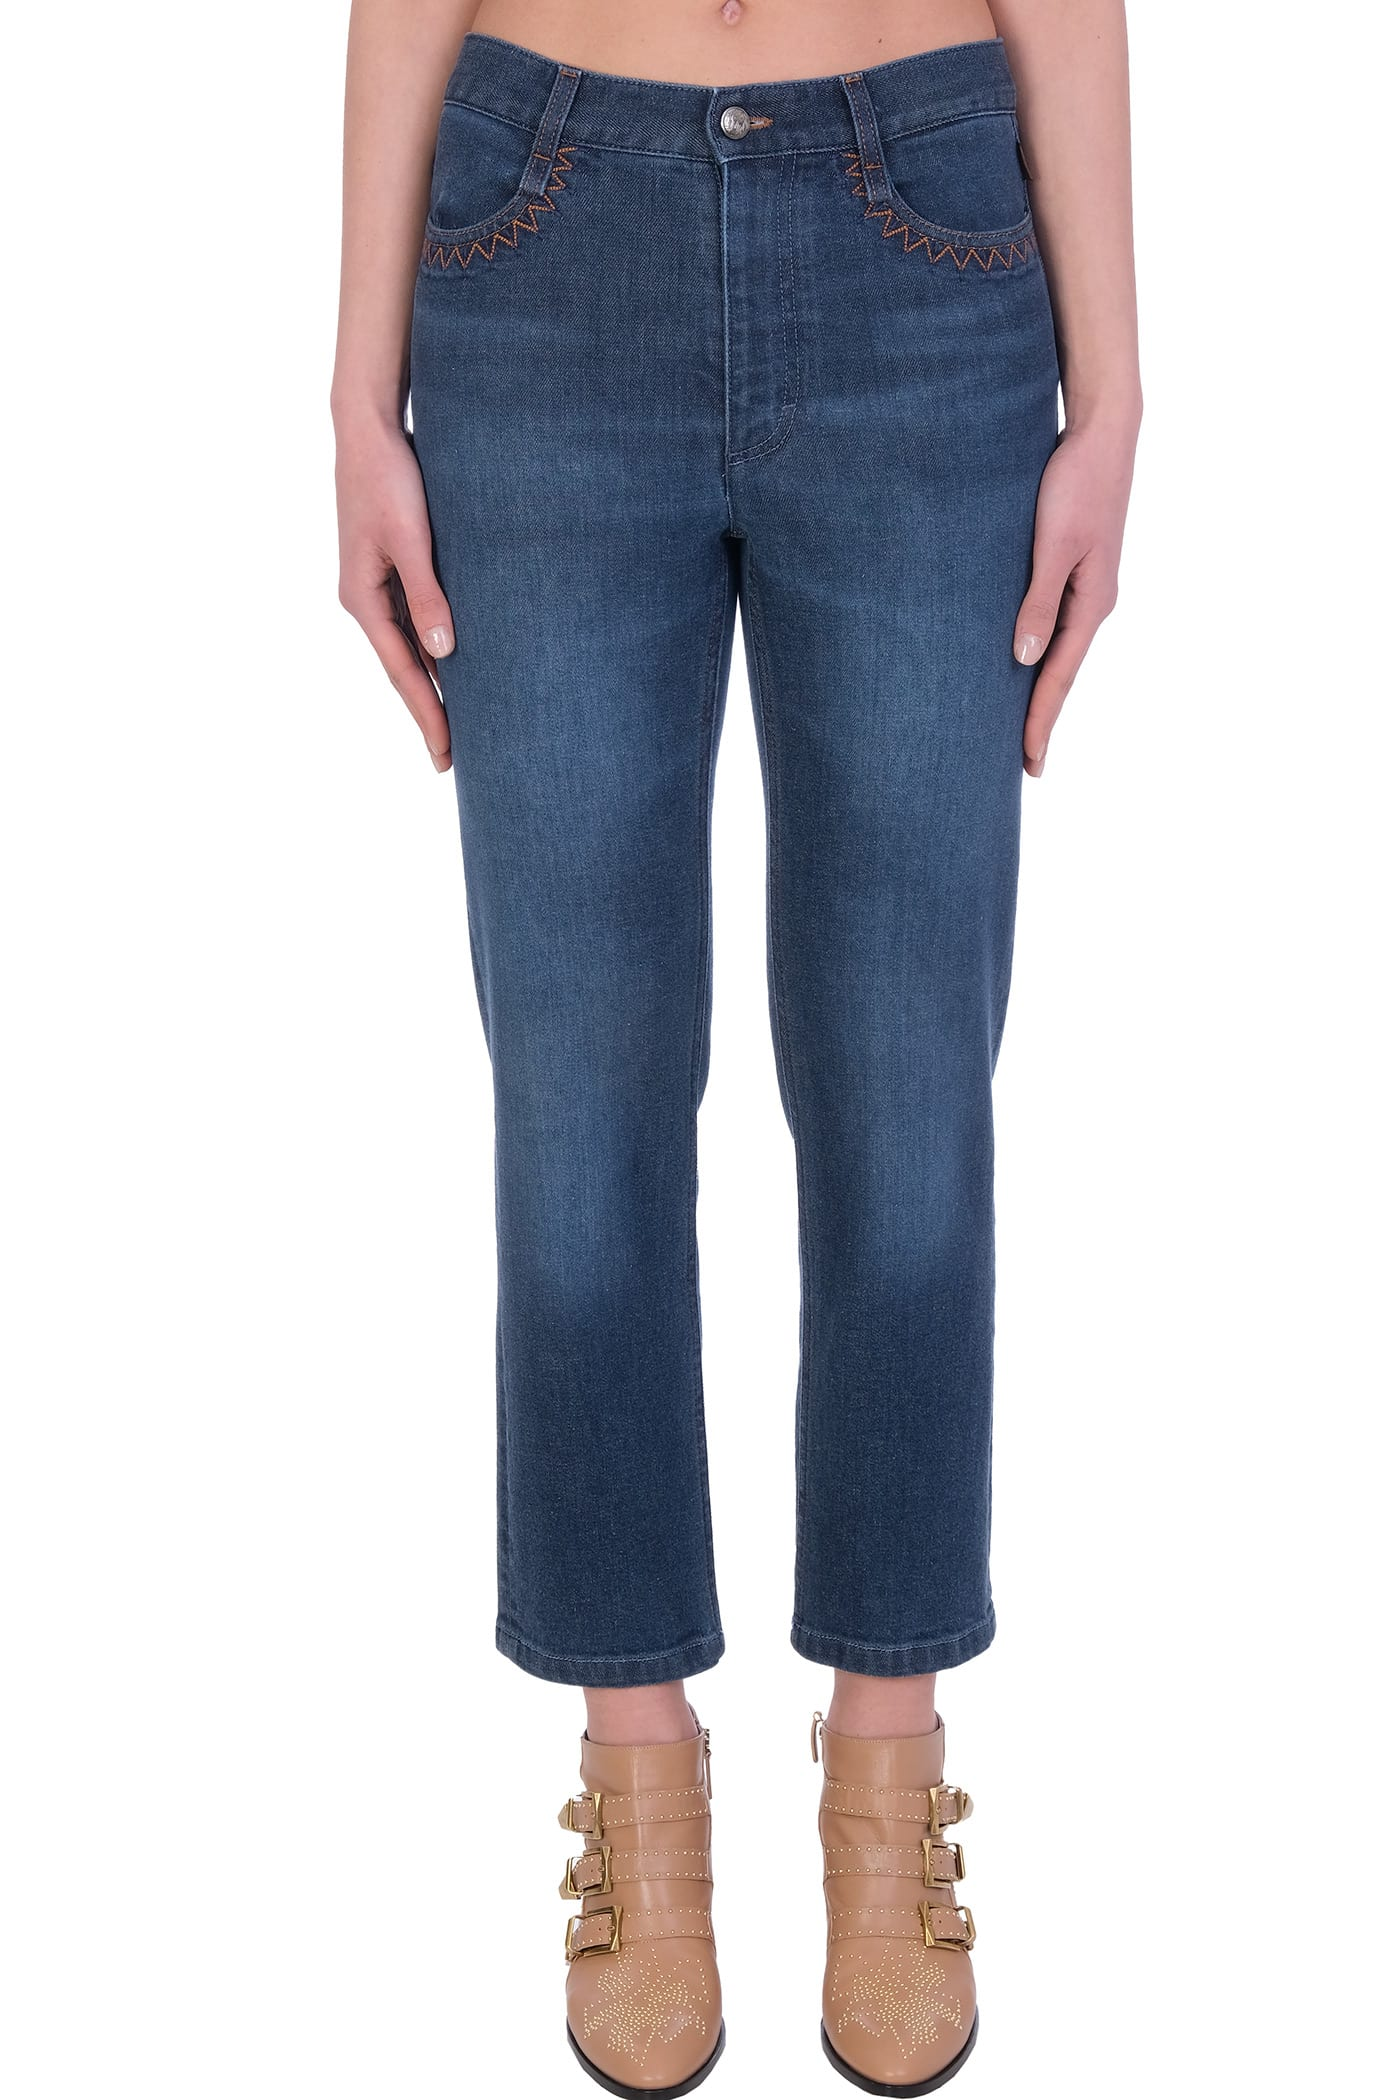 Chloé JEANS IN BLUE DENIM